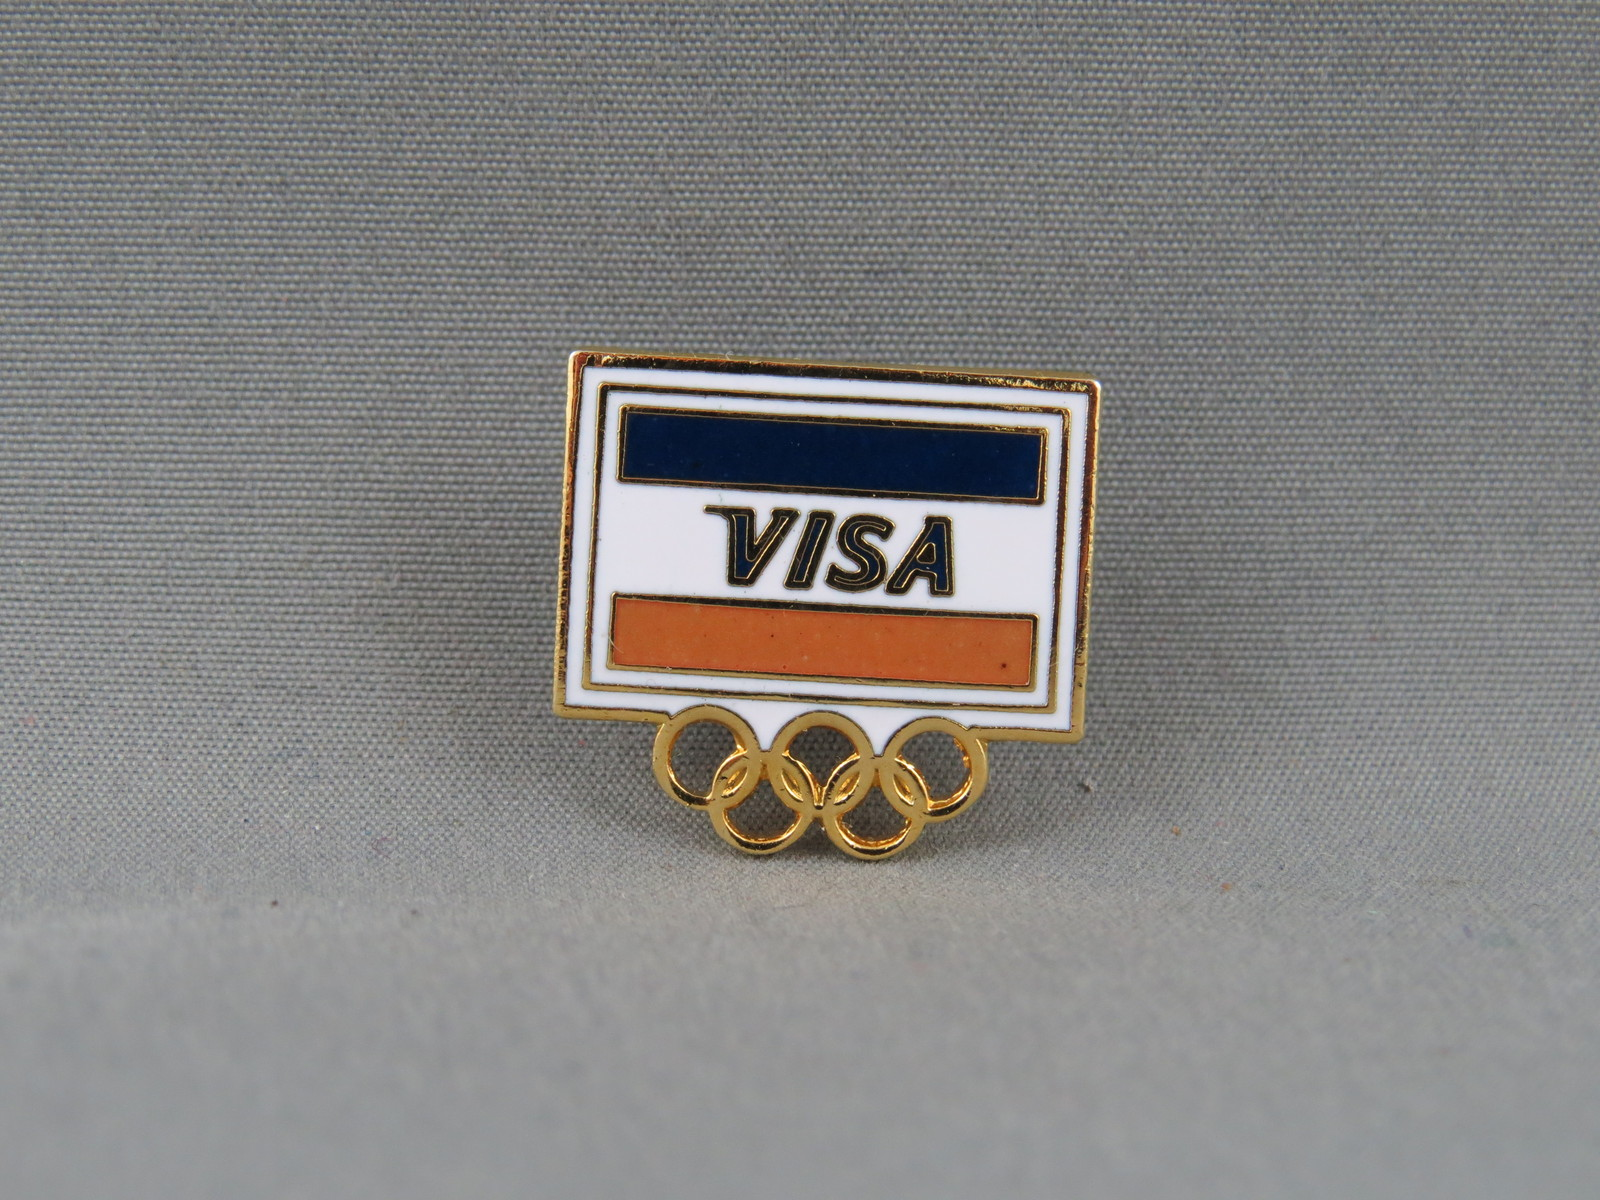 Primary image for 1988 Winter Olympic Games - Visa Sponsor Pin - Calgary Canada 1988